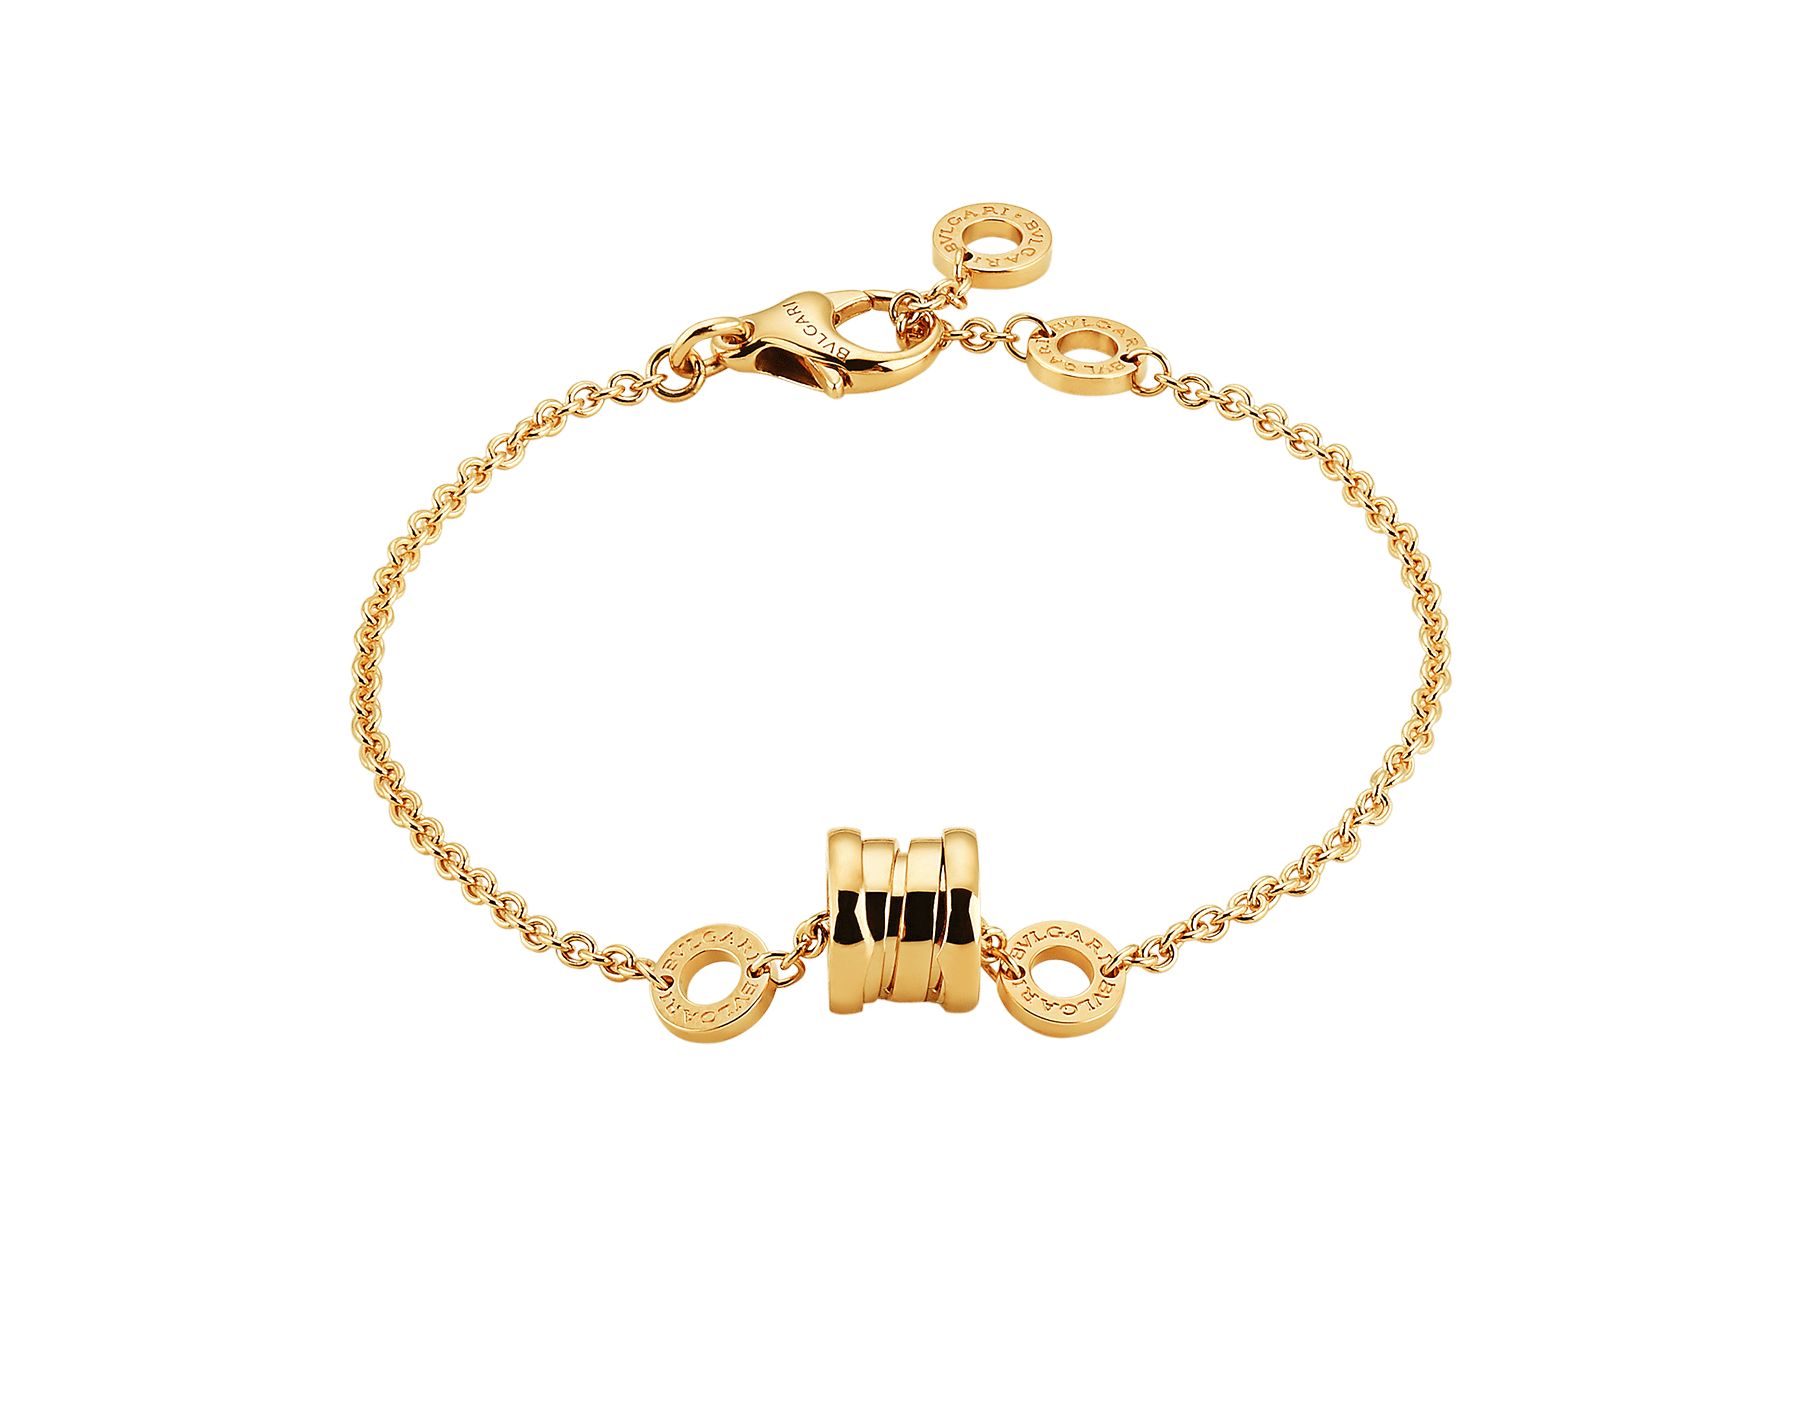 B.zero1 soft bracelet in 18kt yellow gold. BR853667 image 1